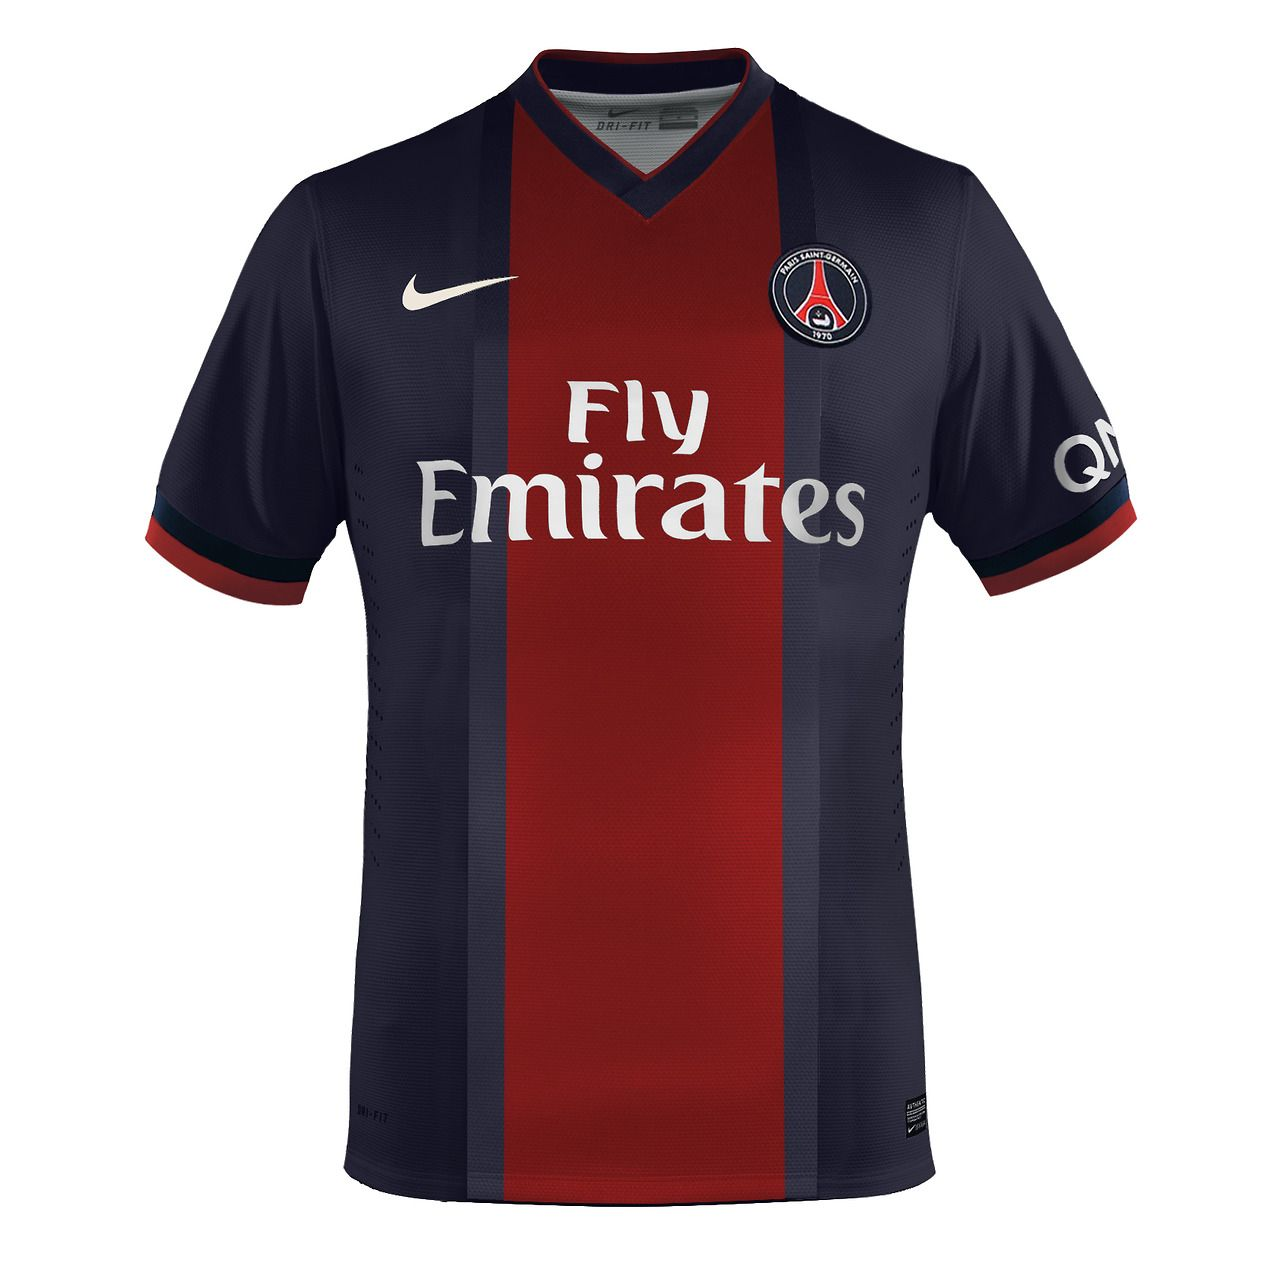 A proposal for Nike Psg first kit, inspired on the 90's the